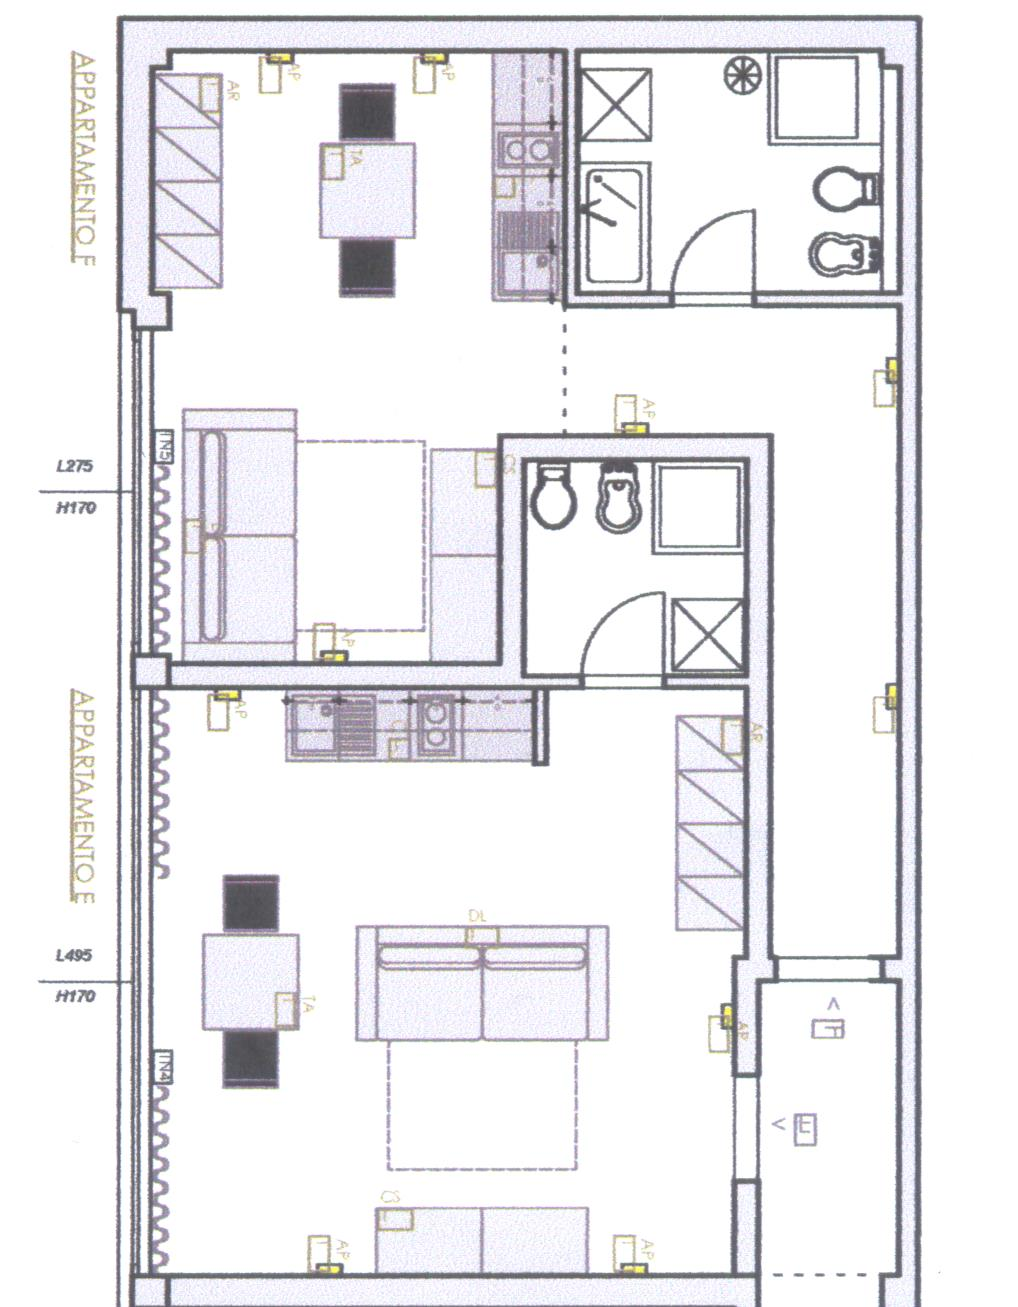 Plan 1/1 for ref. F/0123